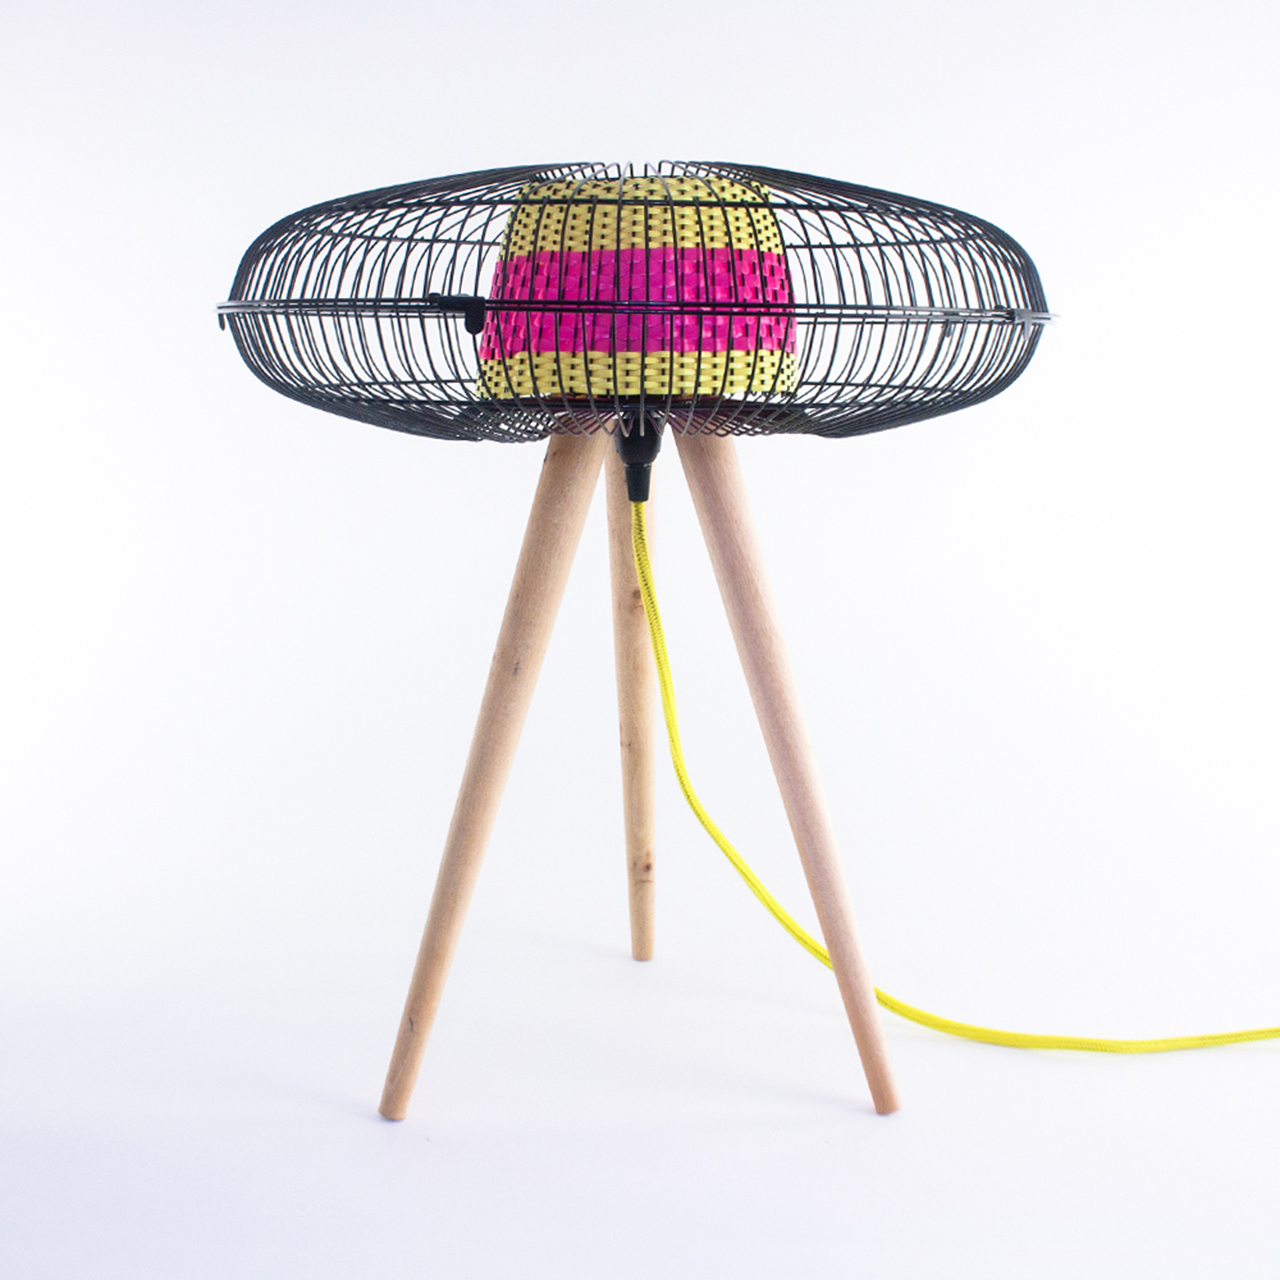 Fantasized: Discarded Fans Become Lighting